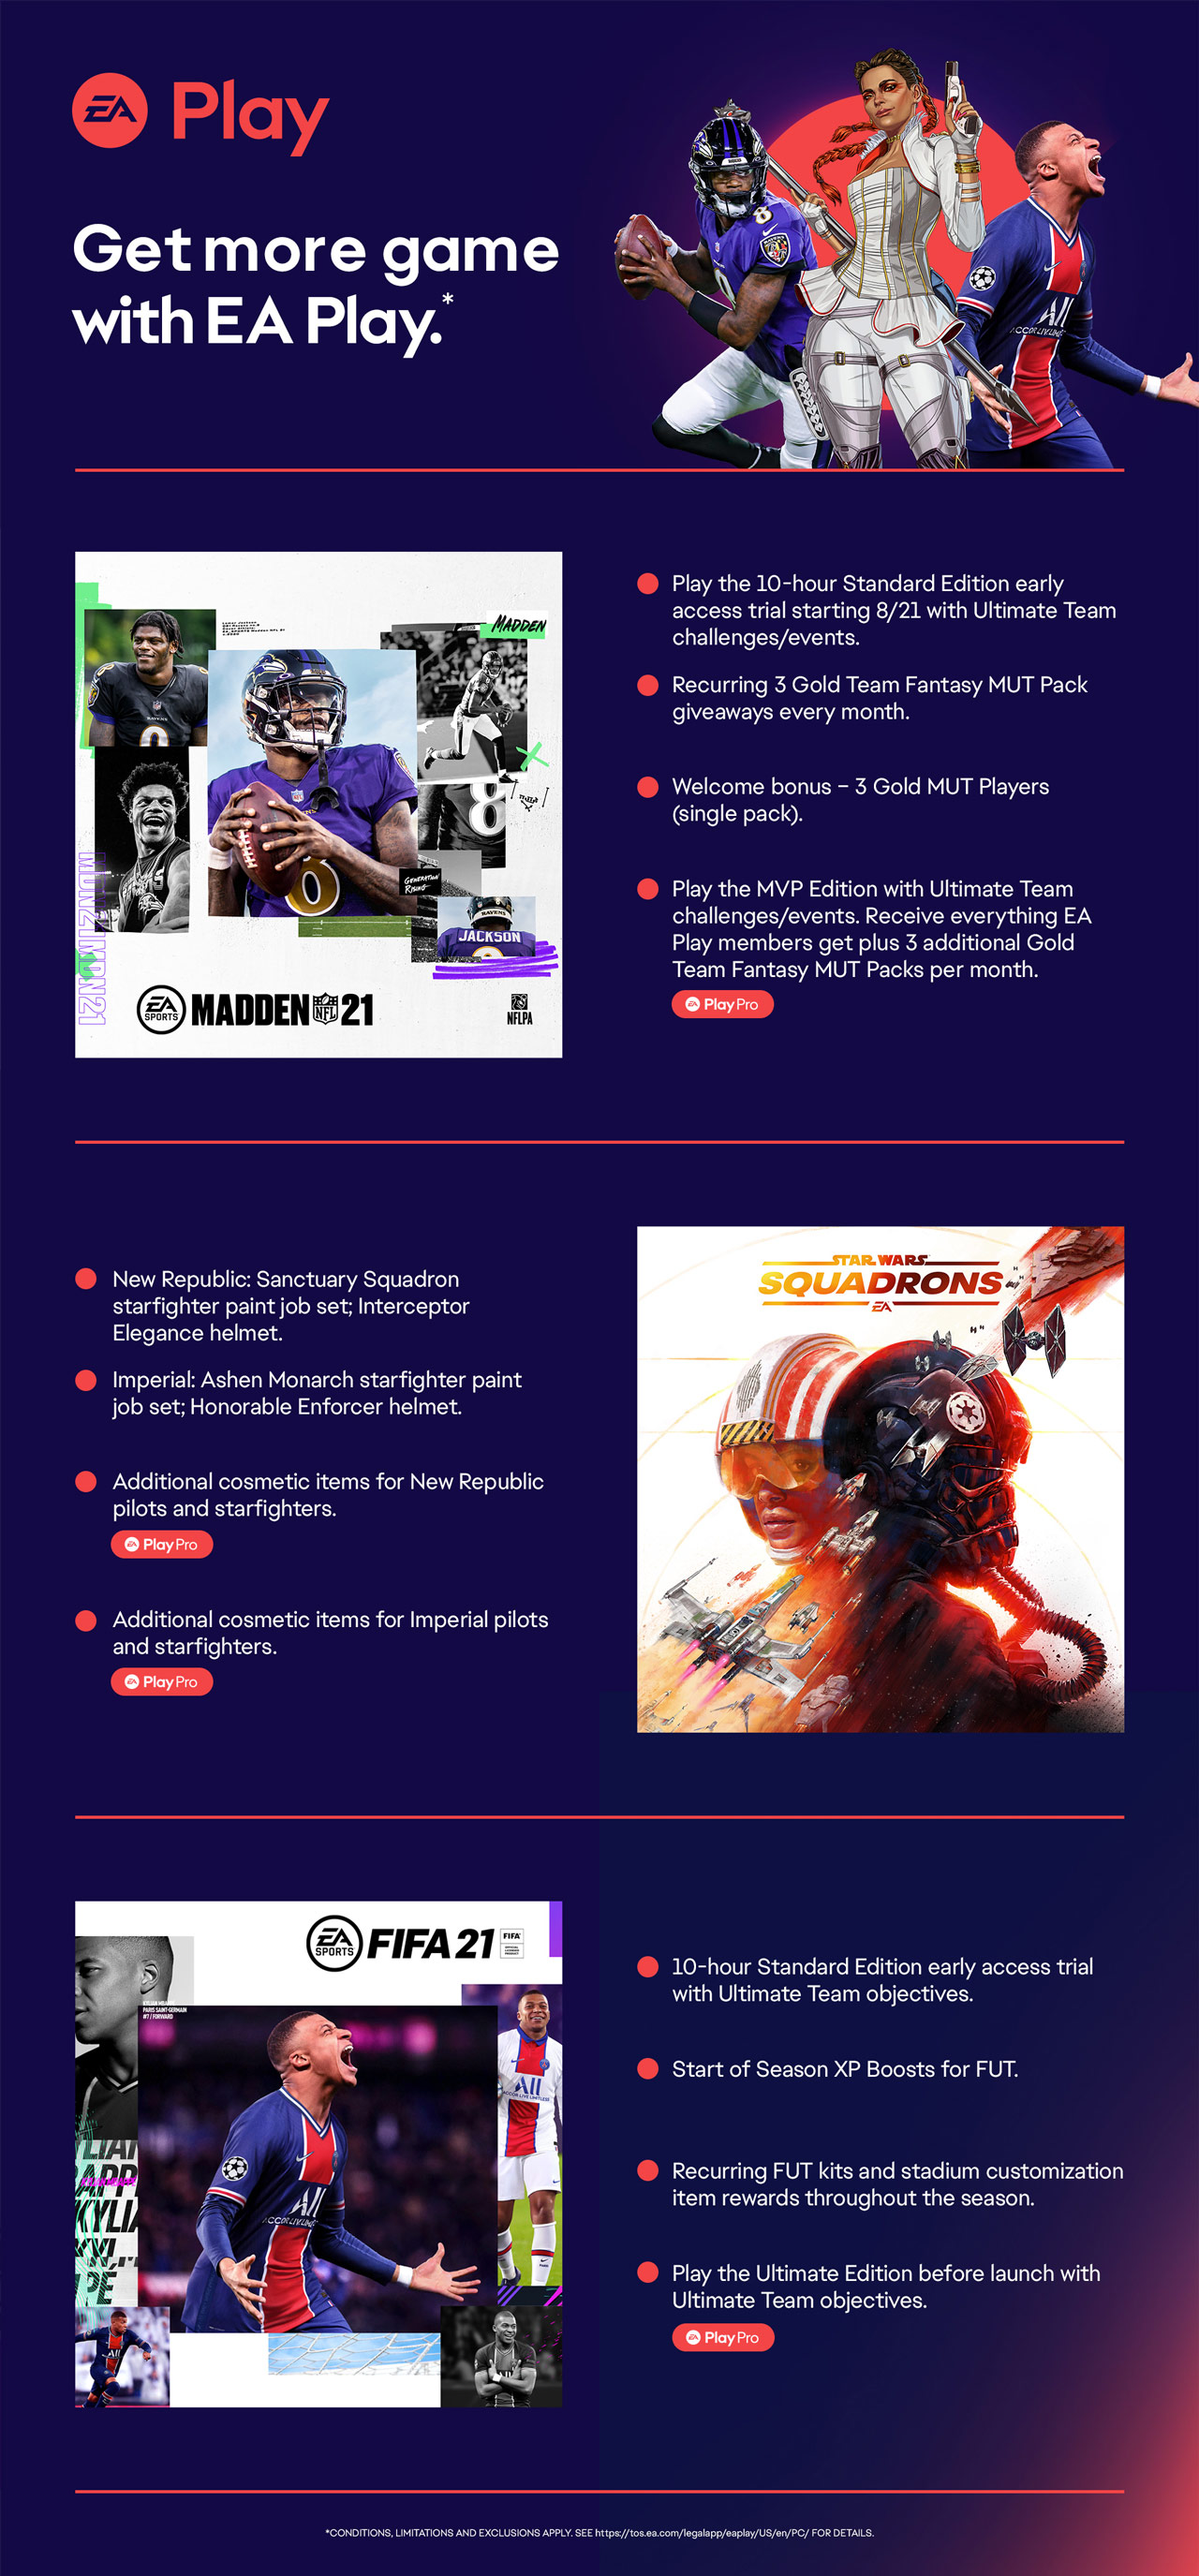 eaplay_rewards_infographic